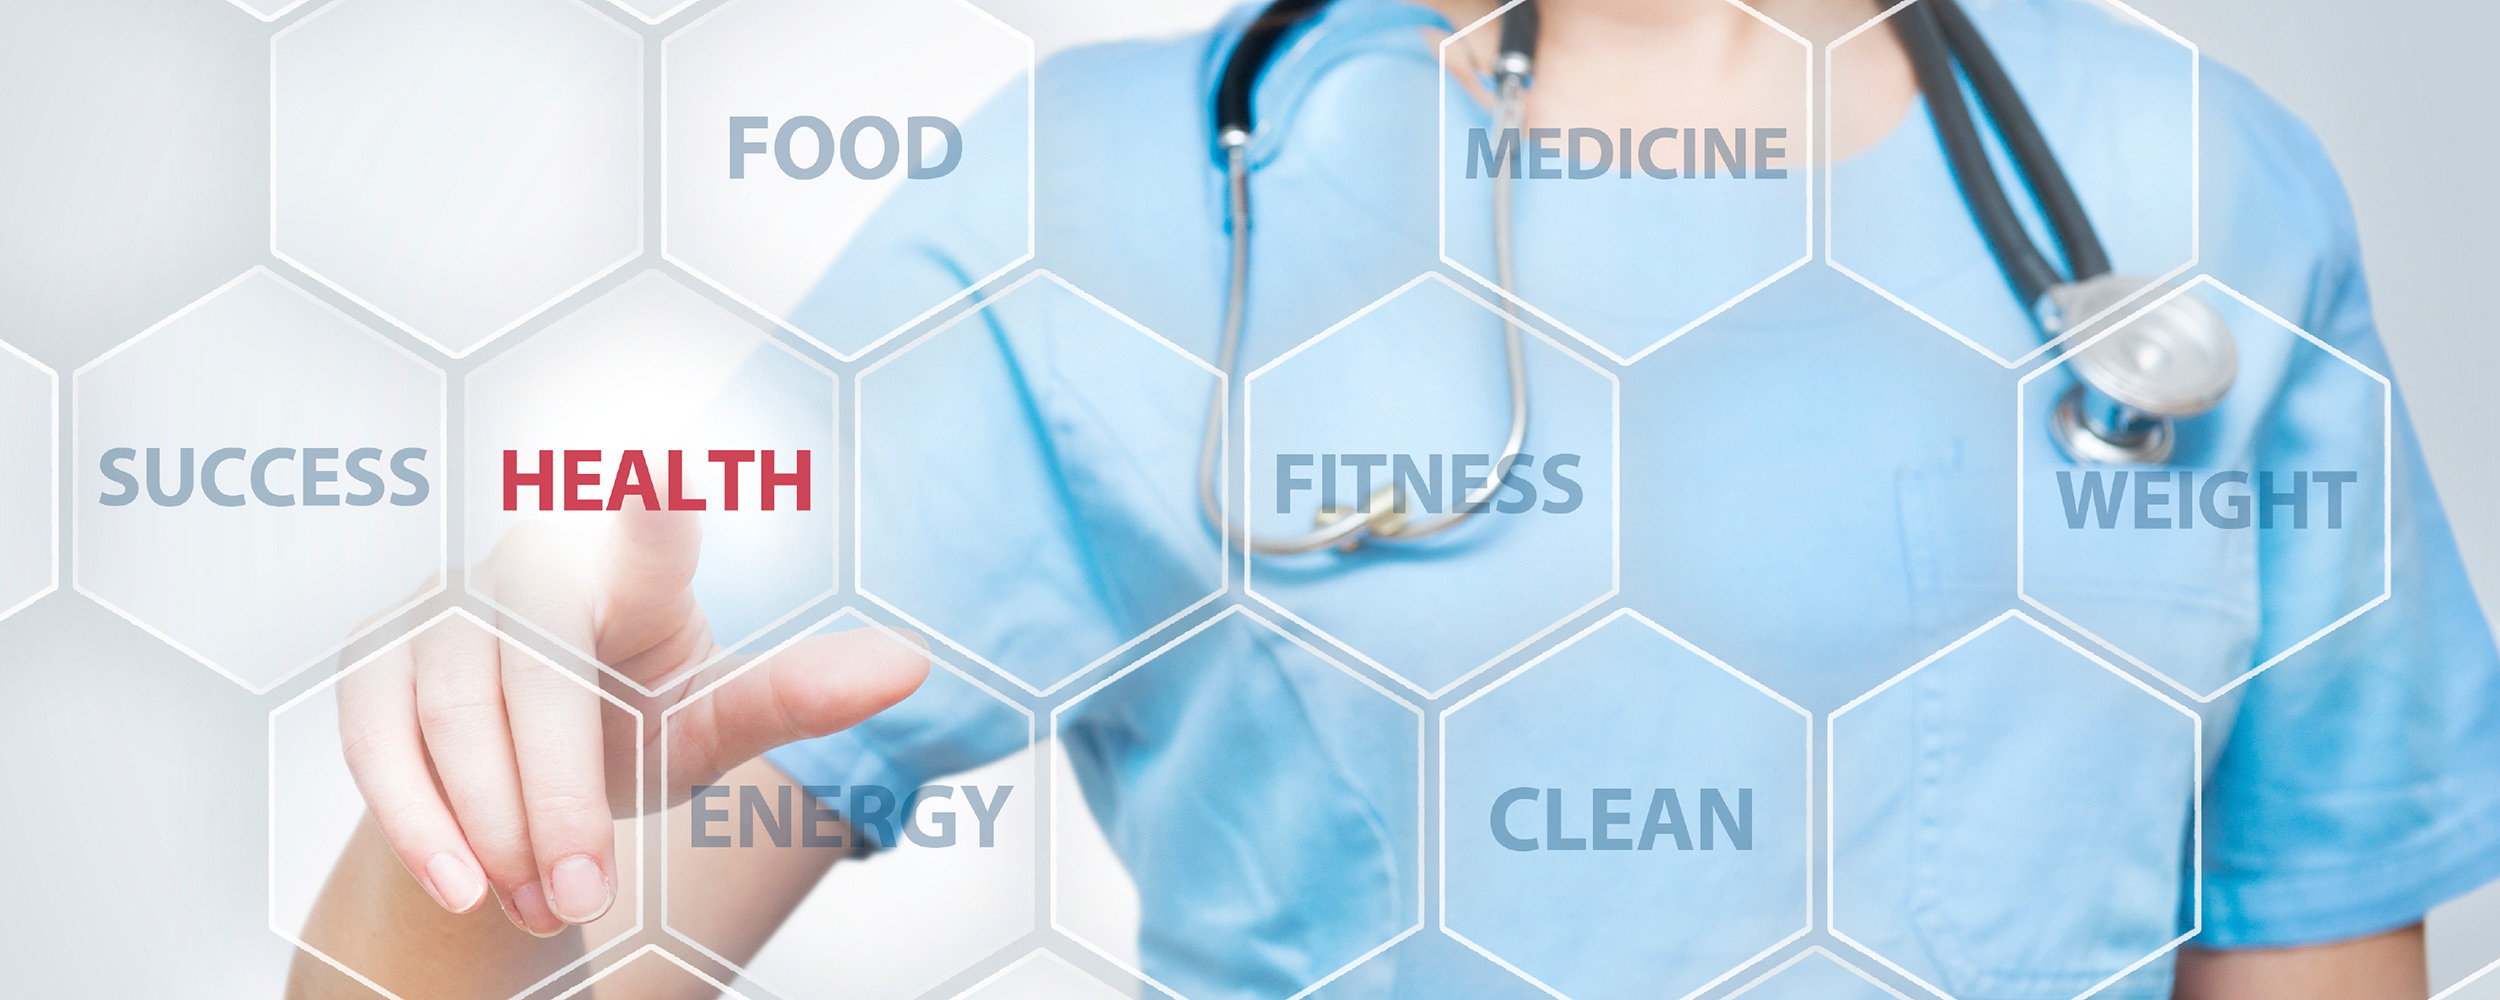 Istock 53991482 health doctor concept 2500